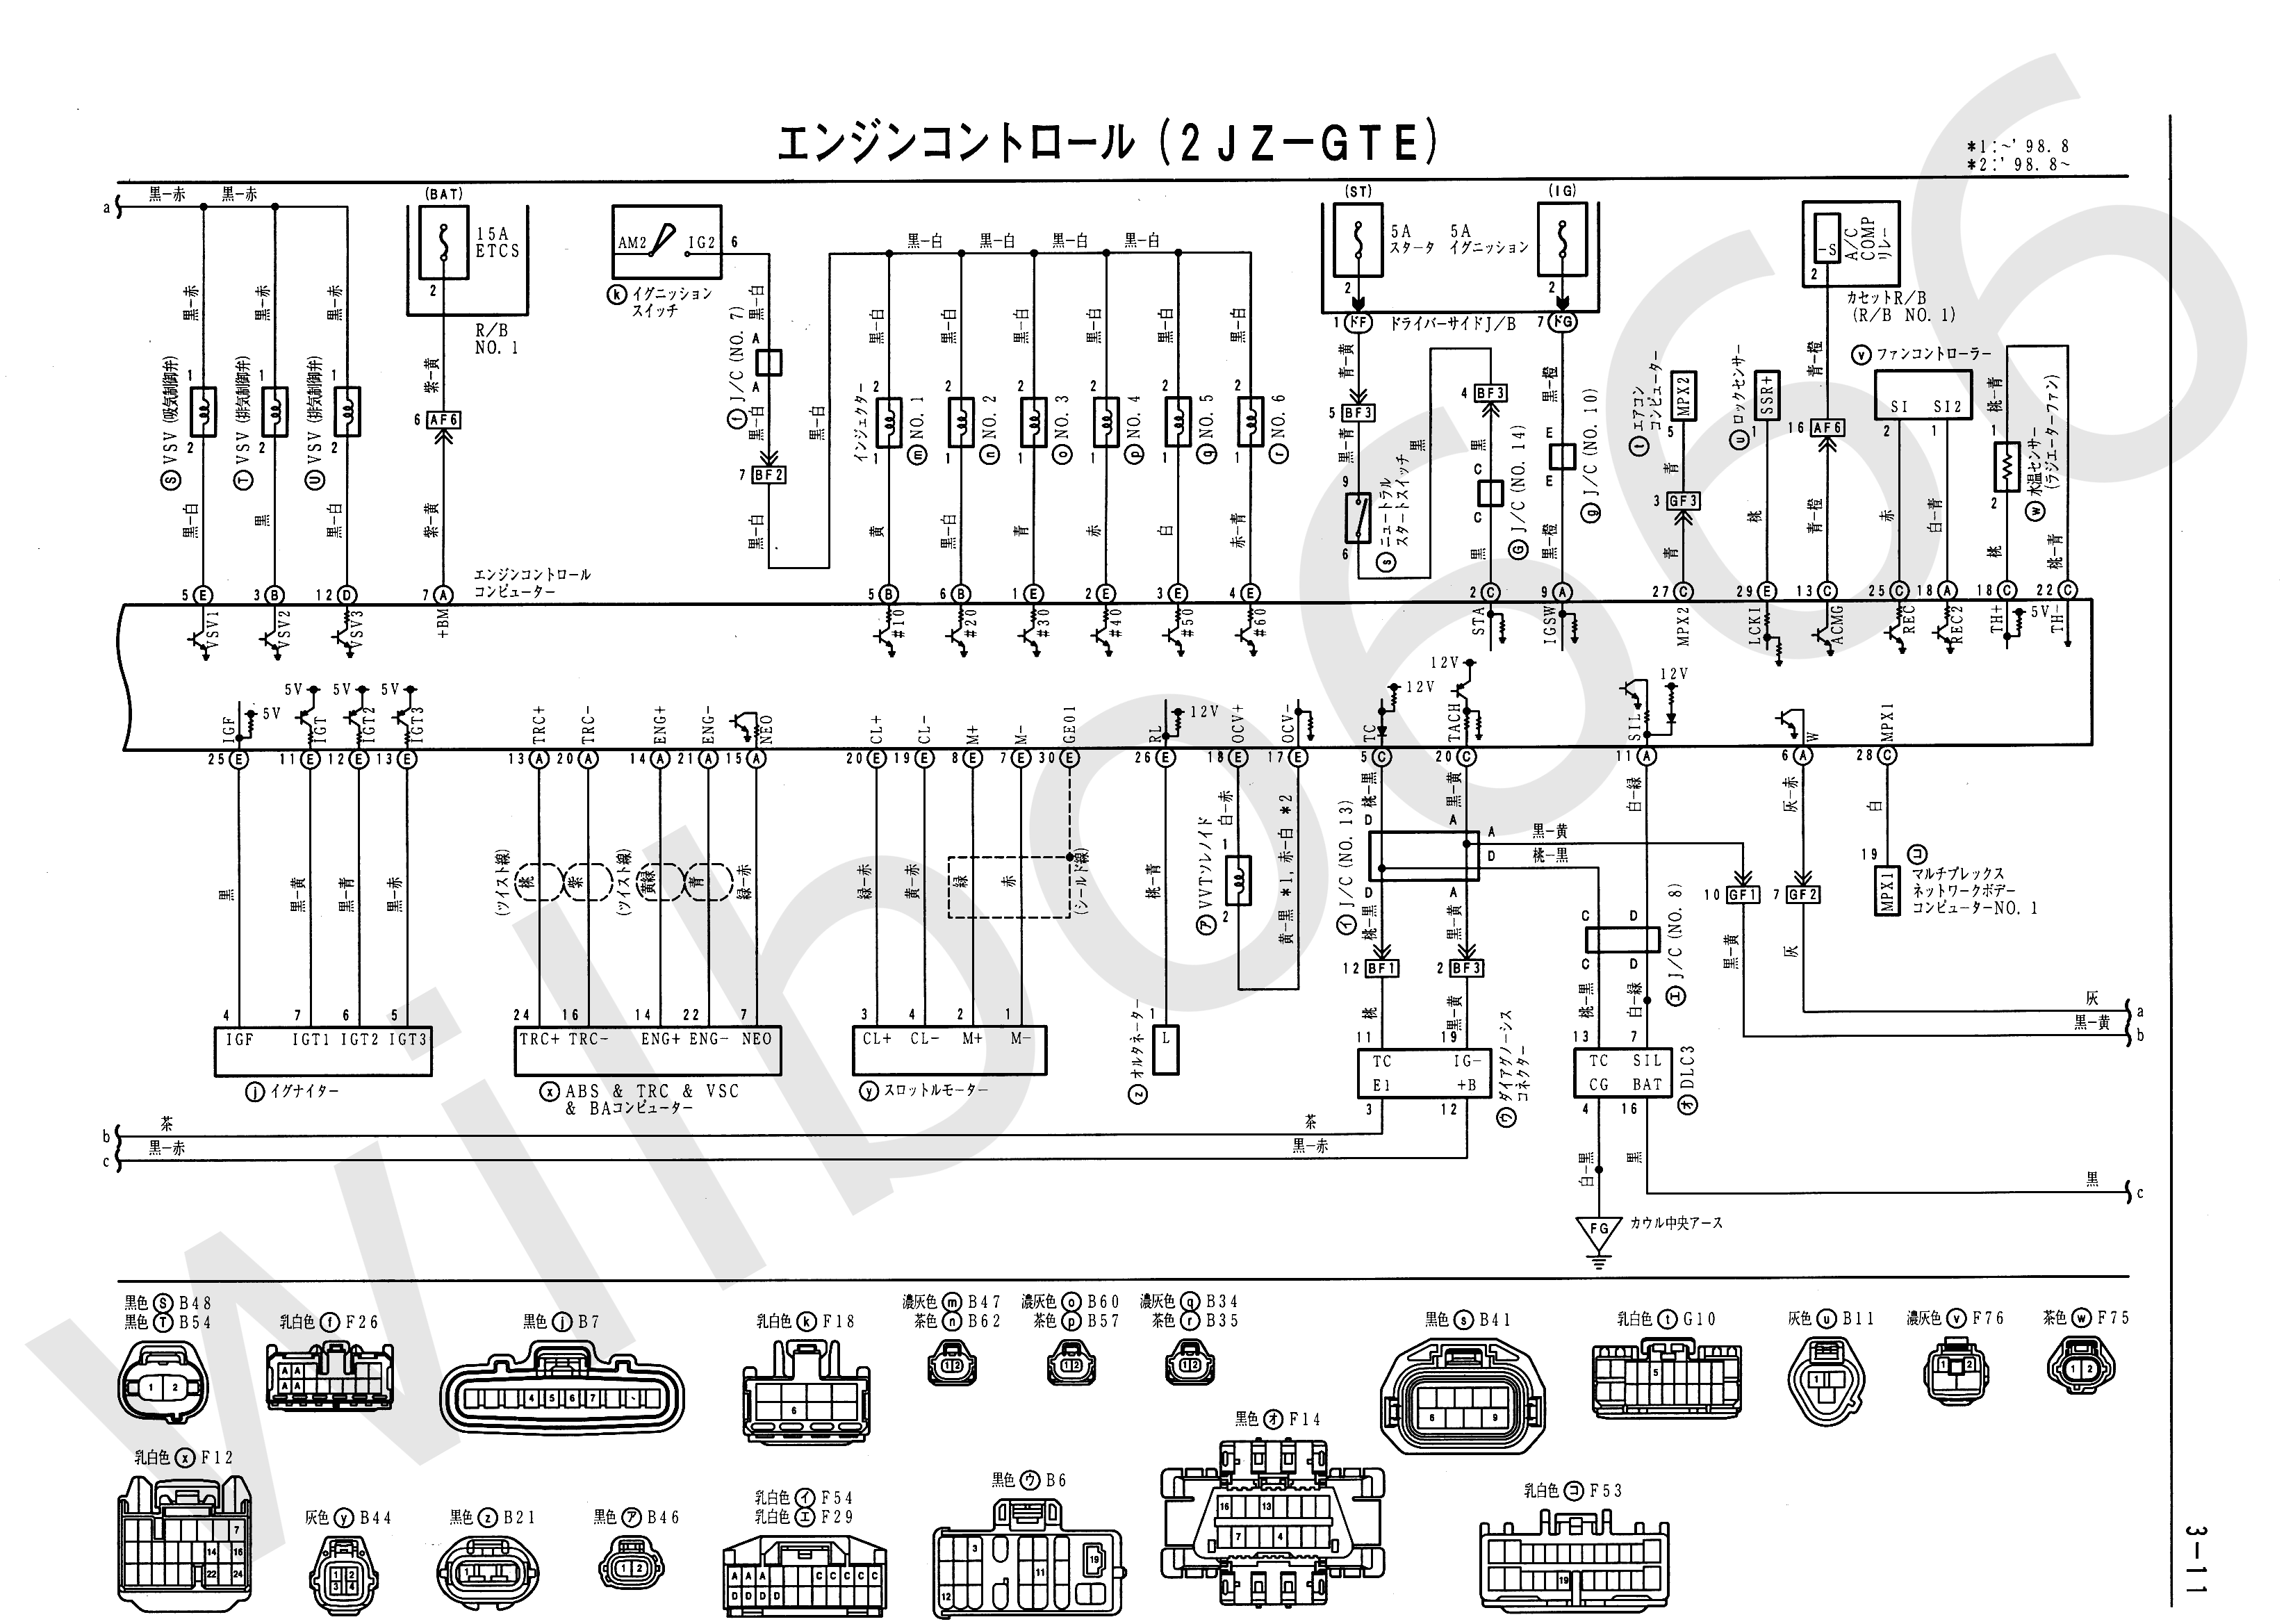 Toyota Ecm Wiring Diagram Library Forklift Pdf Diagrams Hiace Body Ecu Third Leveltoyota Data Harness